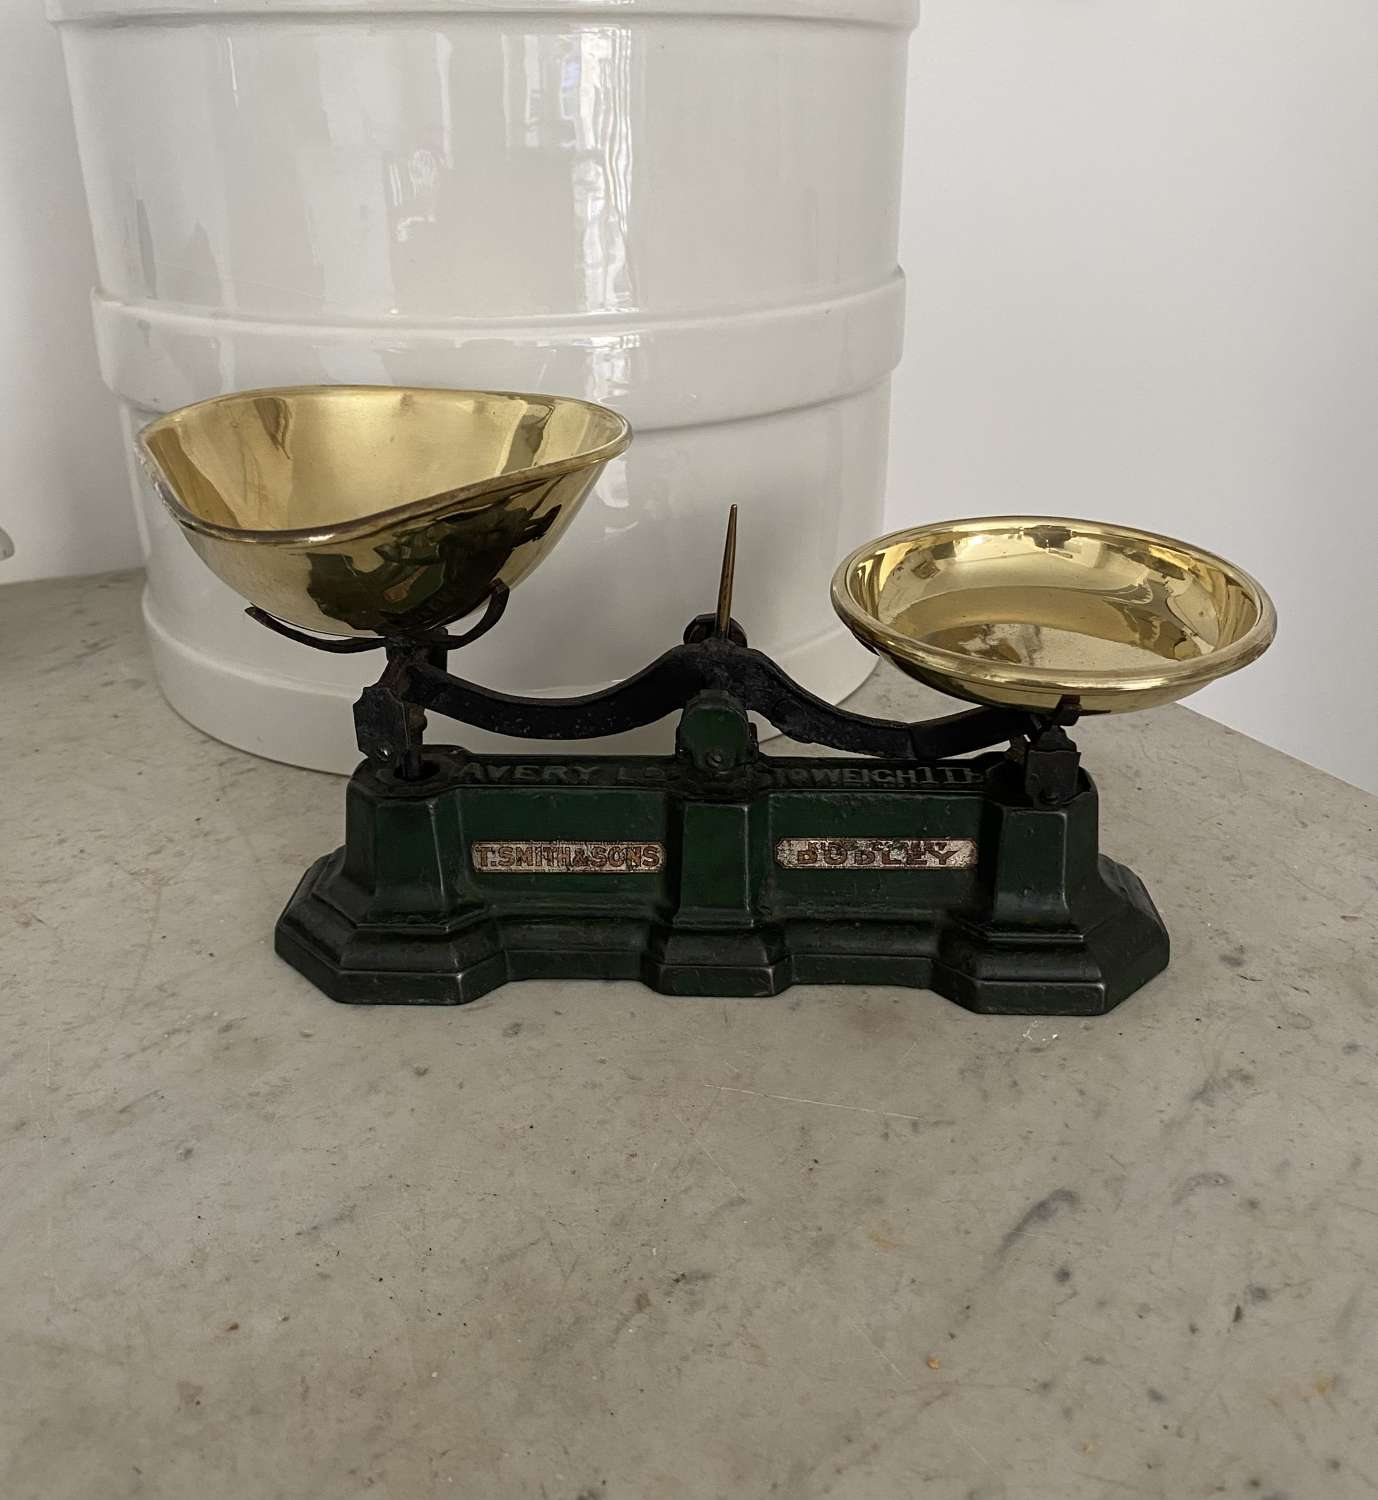 Edwardian Cast Iron Sweet Scales with Brass Pans - Original Paint